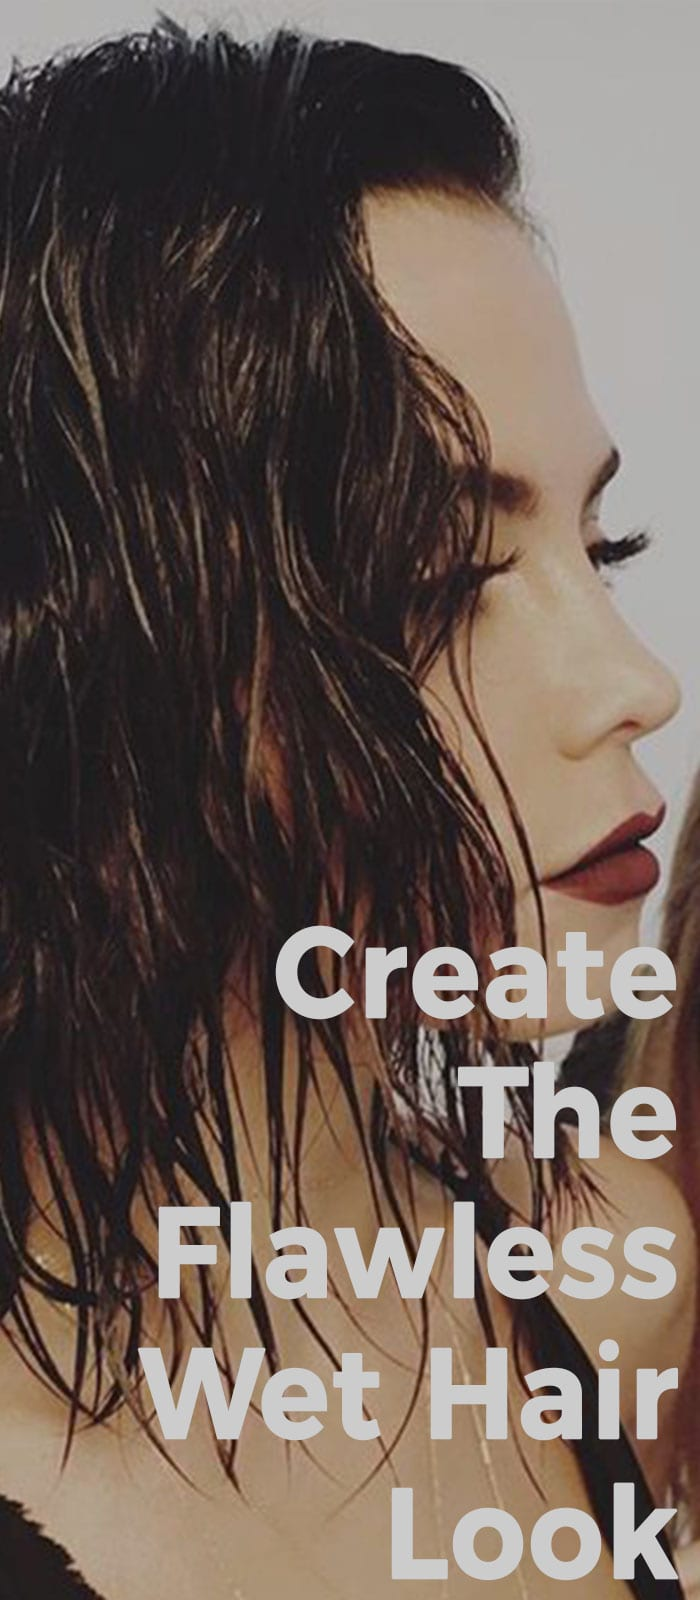 Create The Flawless Wet Hair Look